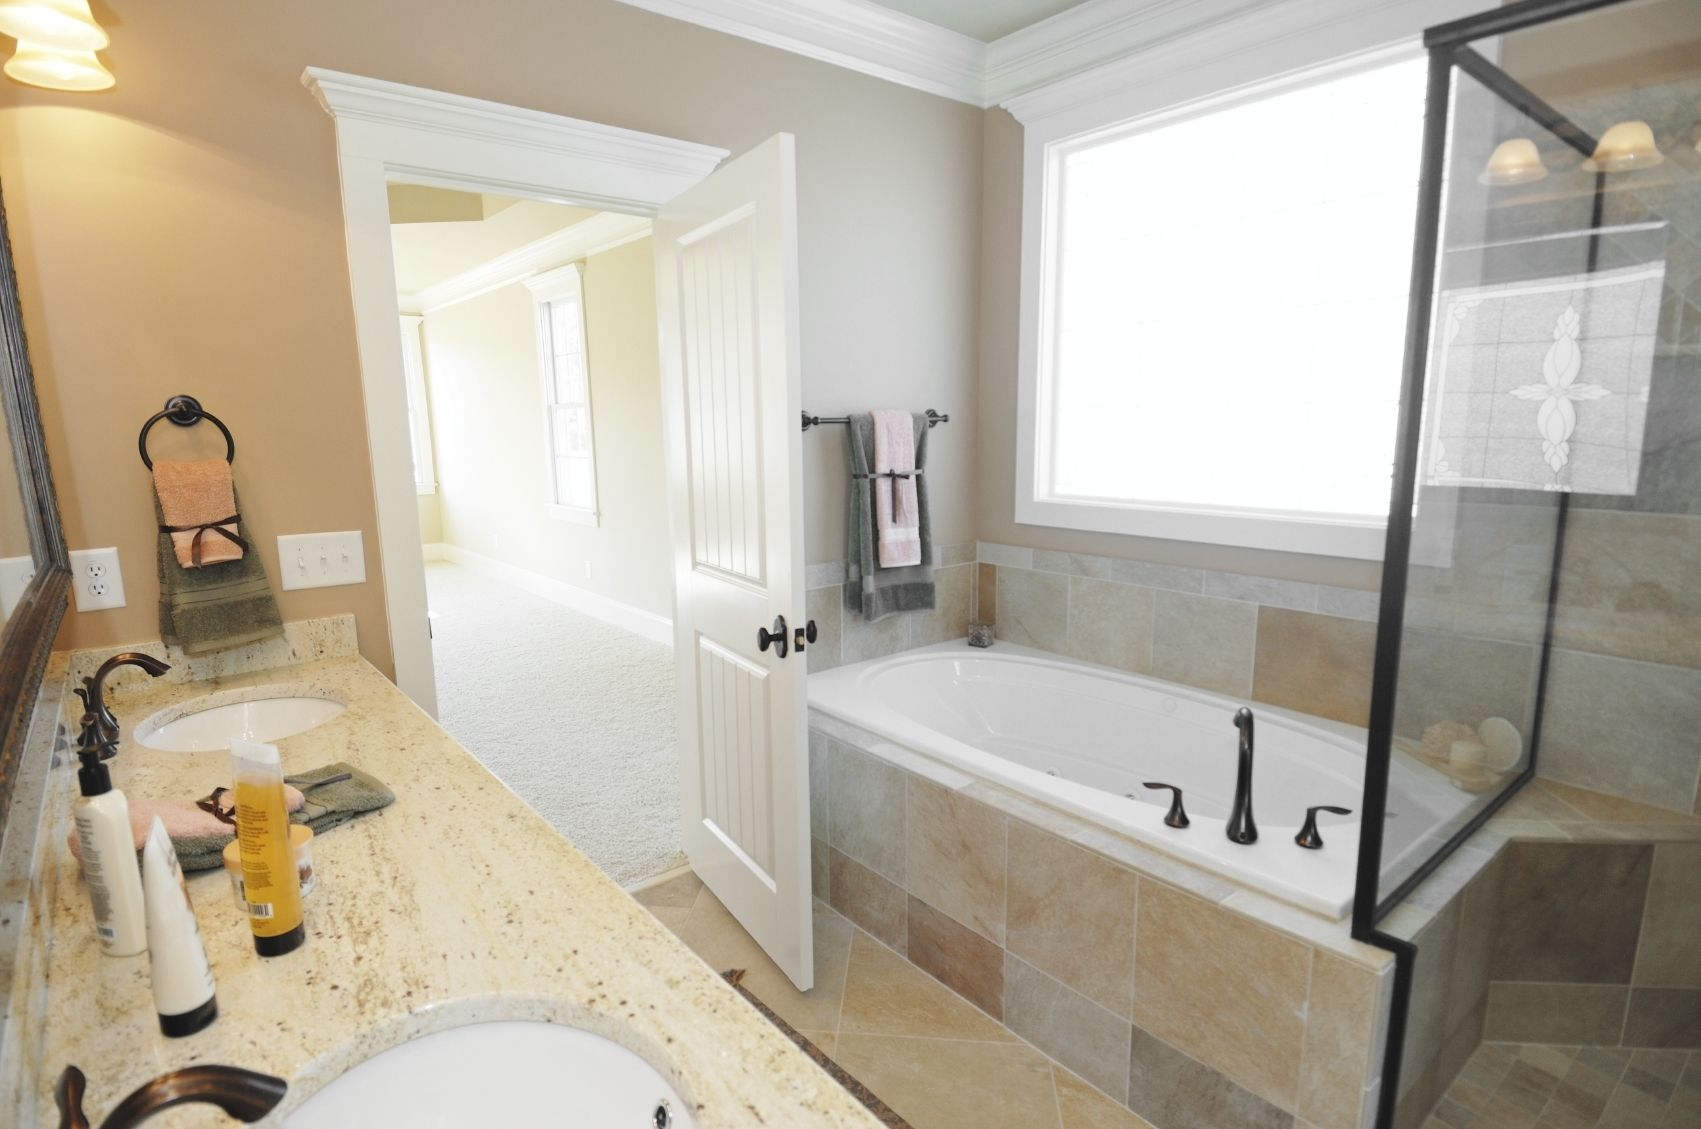 all bathrooms al ne remodeling for lovely painting h simple decoration instance birmingham lincoln of in bathroom d design photograph remodel